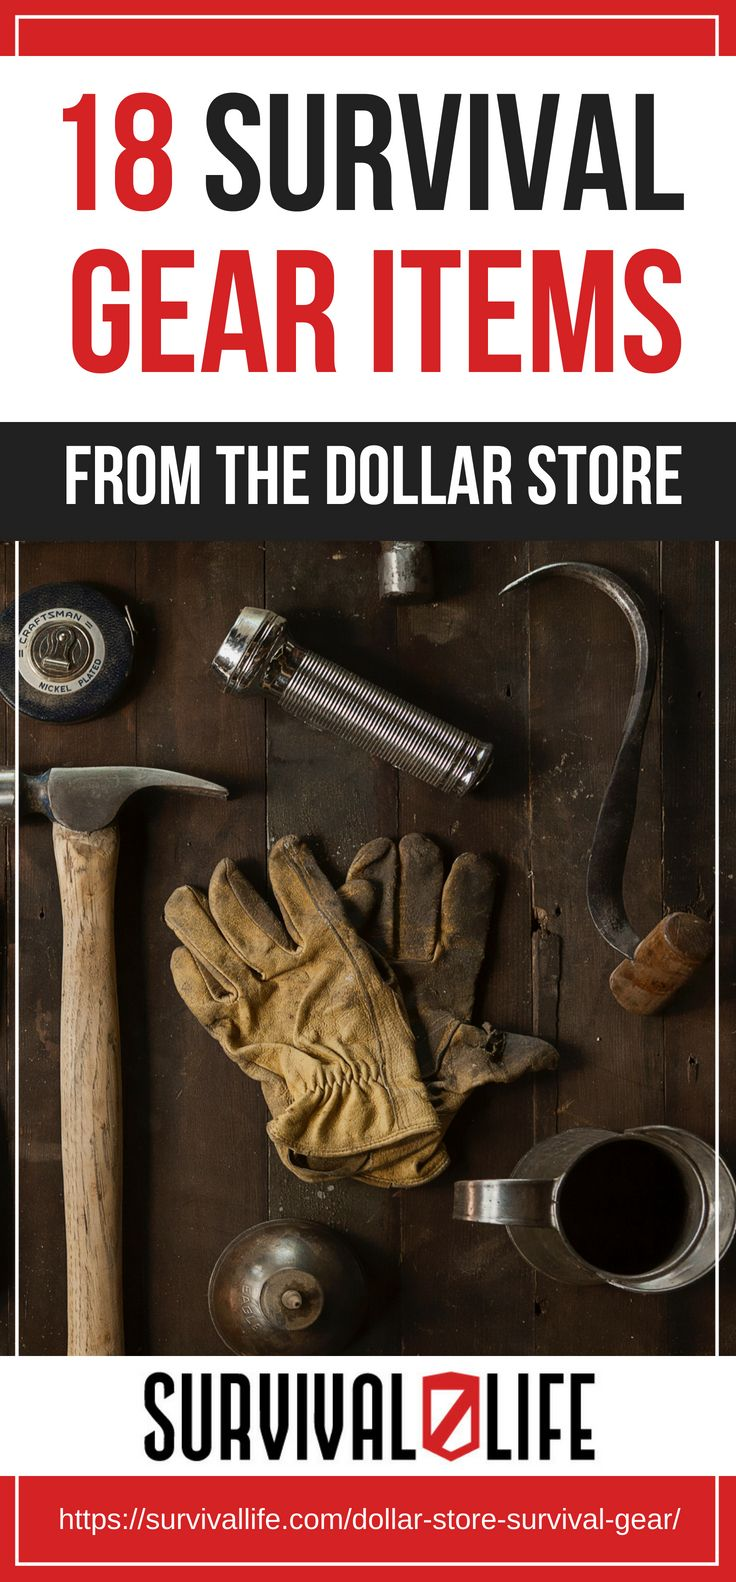 Pinterest Placard   18 Survival Gear Items From The Dollar Store